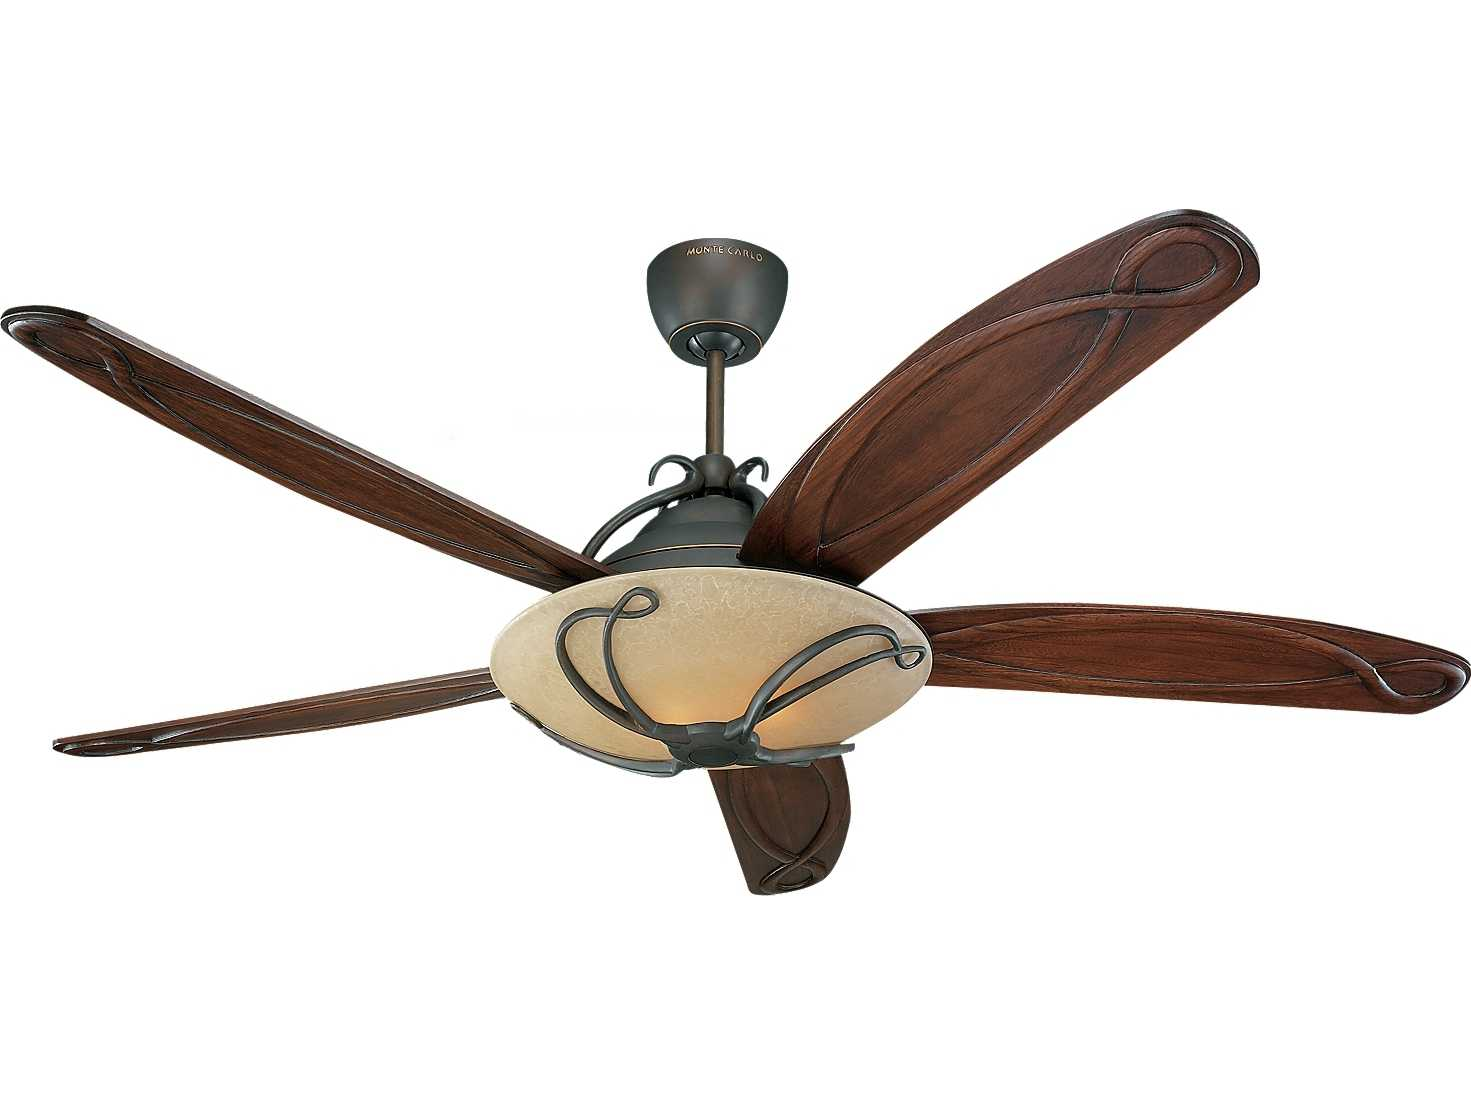 Monte Carlo Fans Chloe Roman Bronze 66 Wide Indoor  : MCF5CLR66RBDLzm from www.luxedecor.com size 1471 x 1104 jpeg 58kB